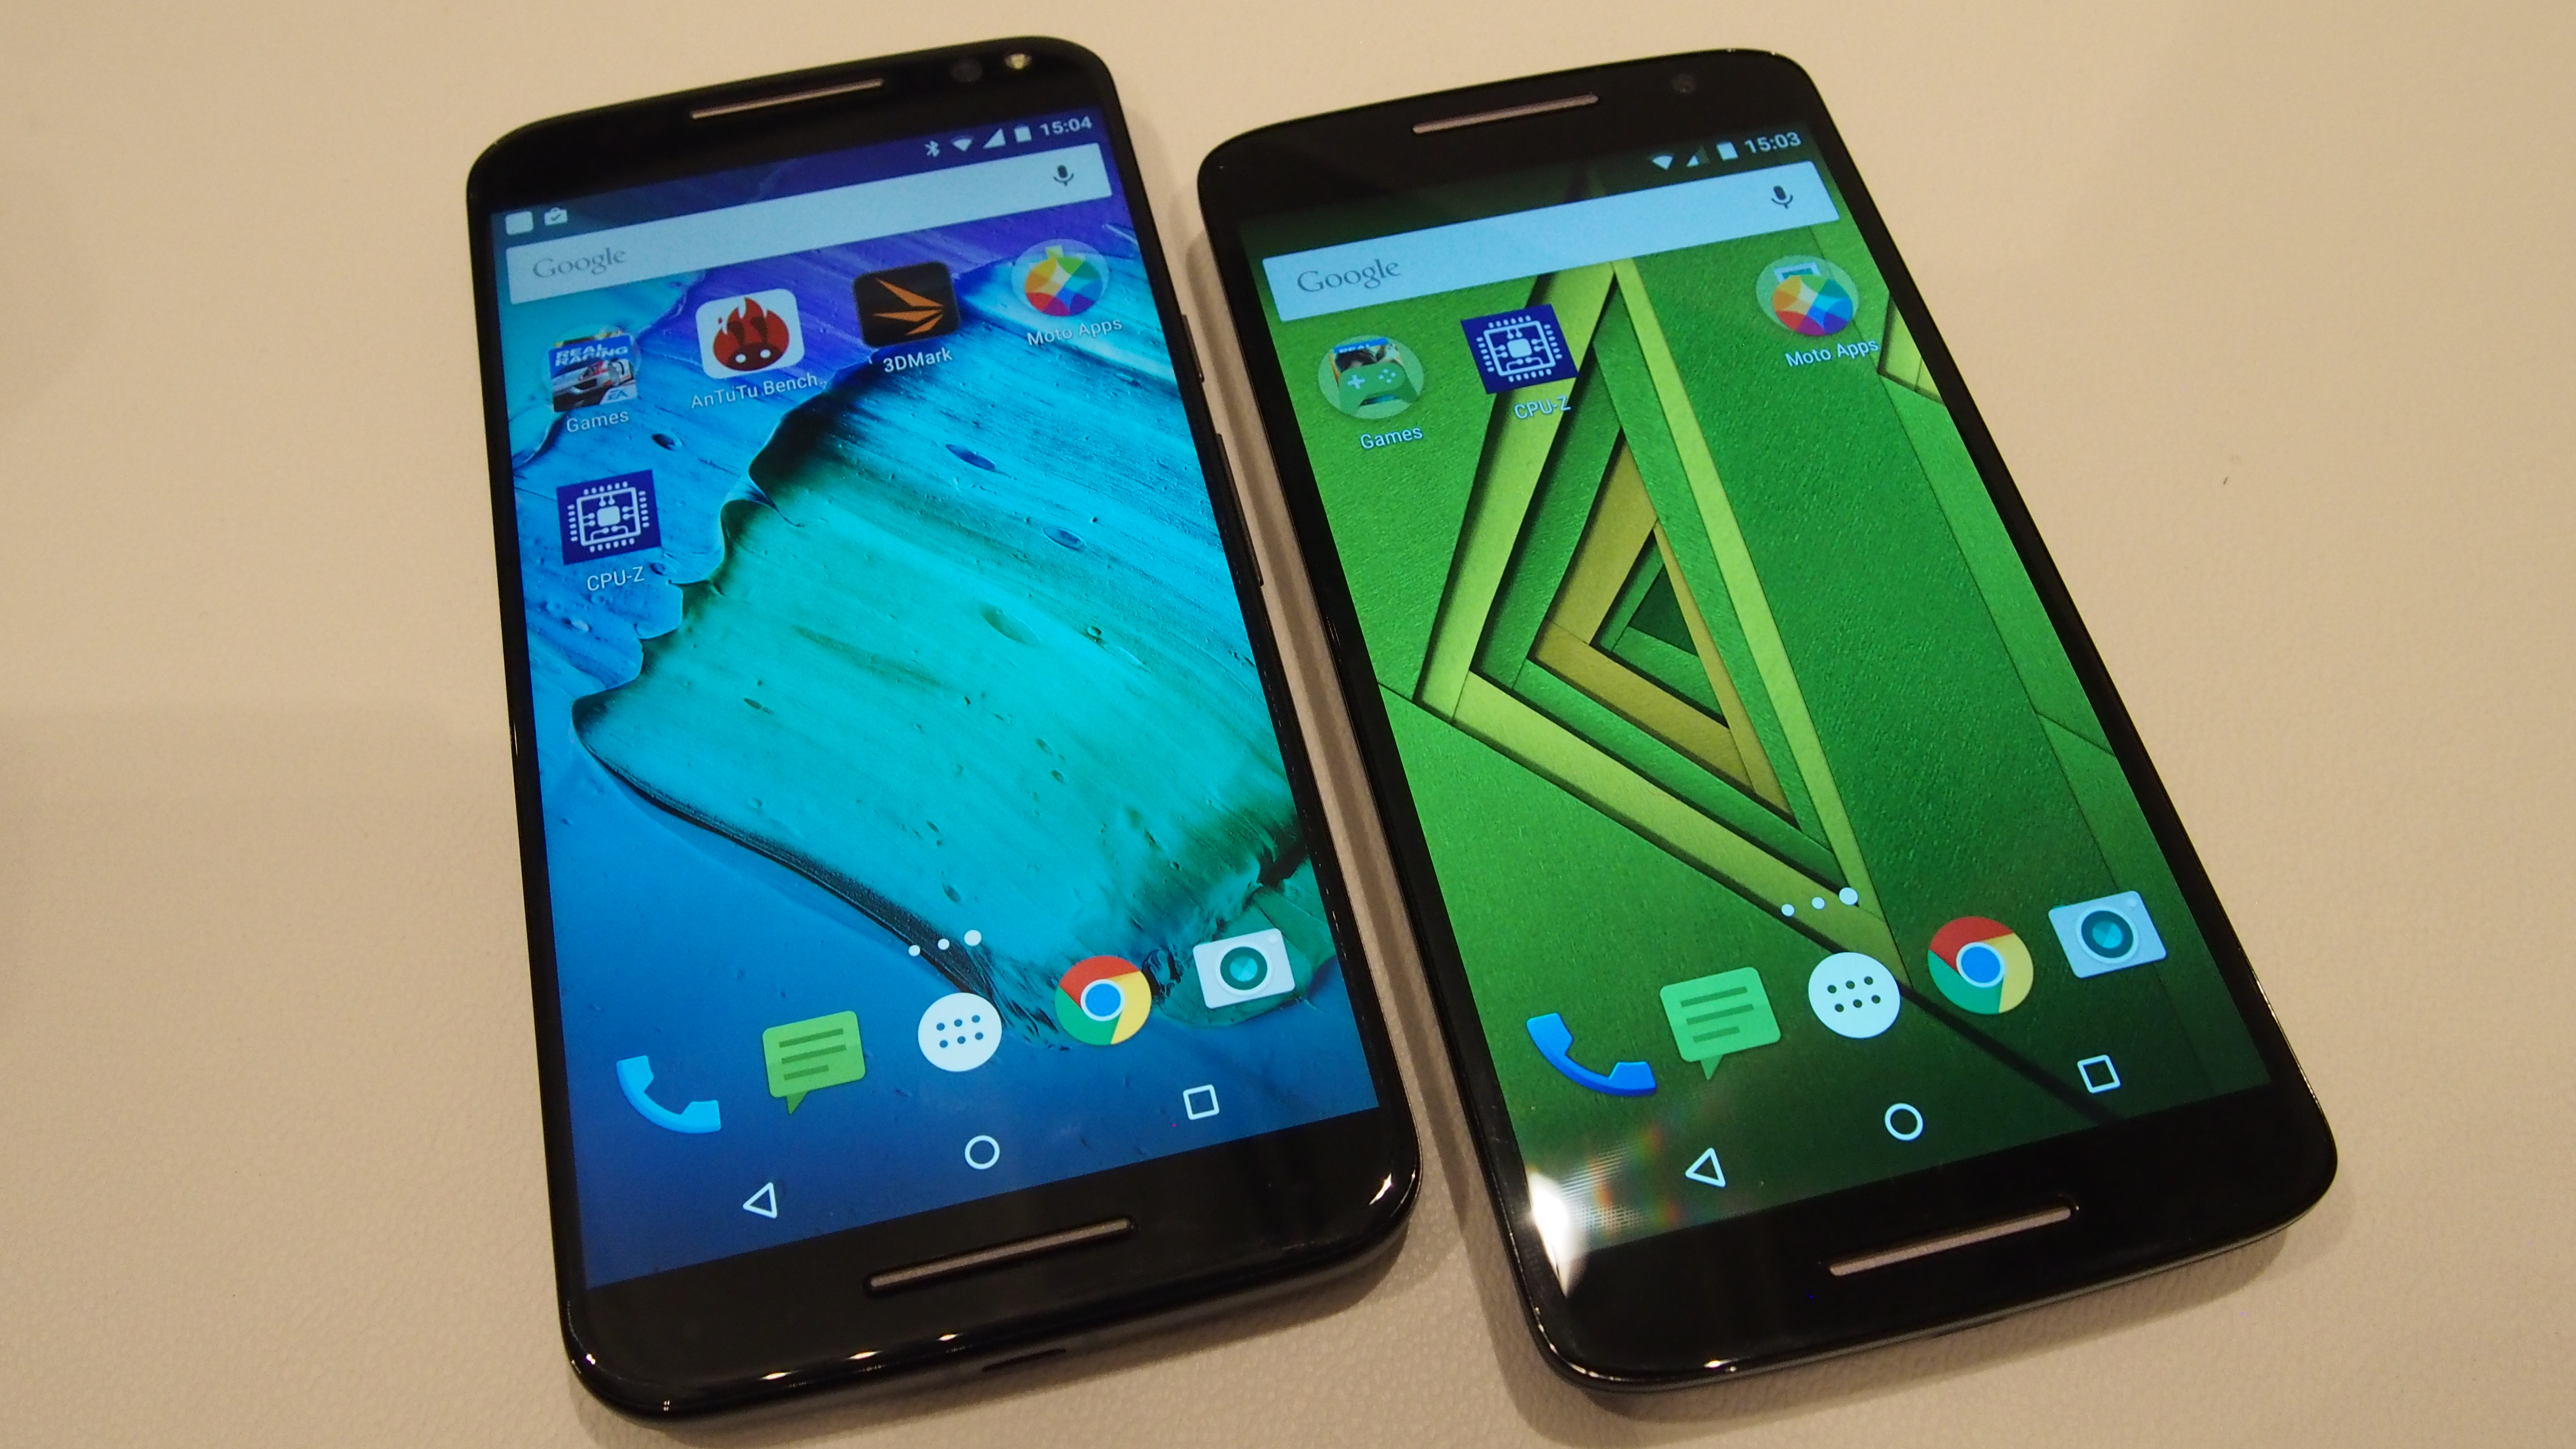 MOTOROLA MOTO X PLAY Photos, Images and Wallpapers